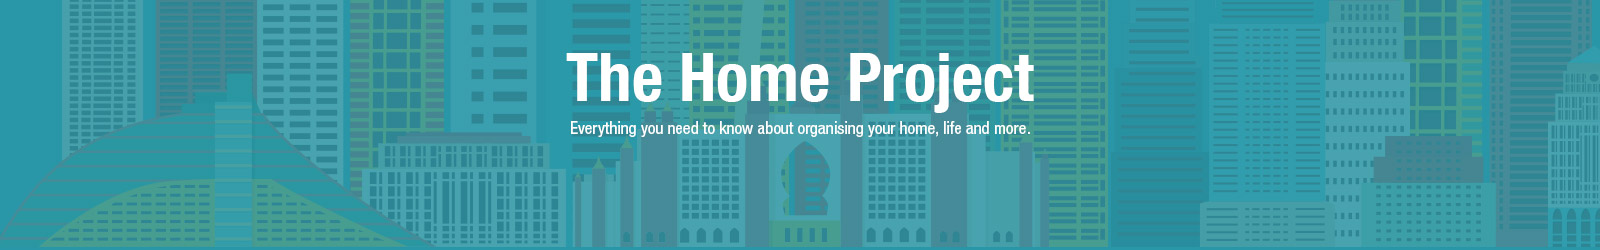 The Home Project | ServiceMarket